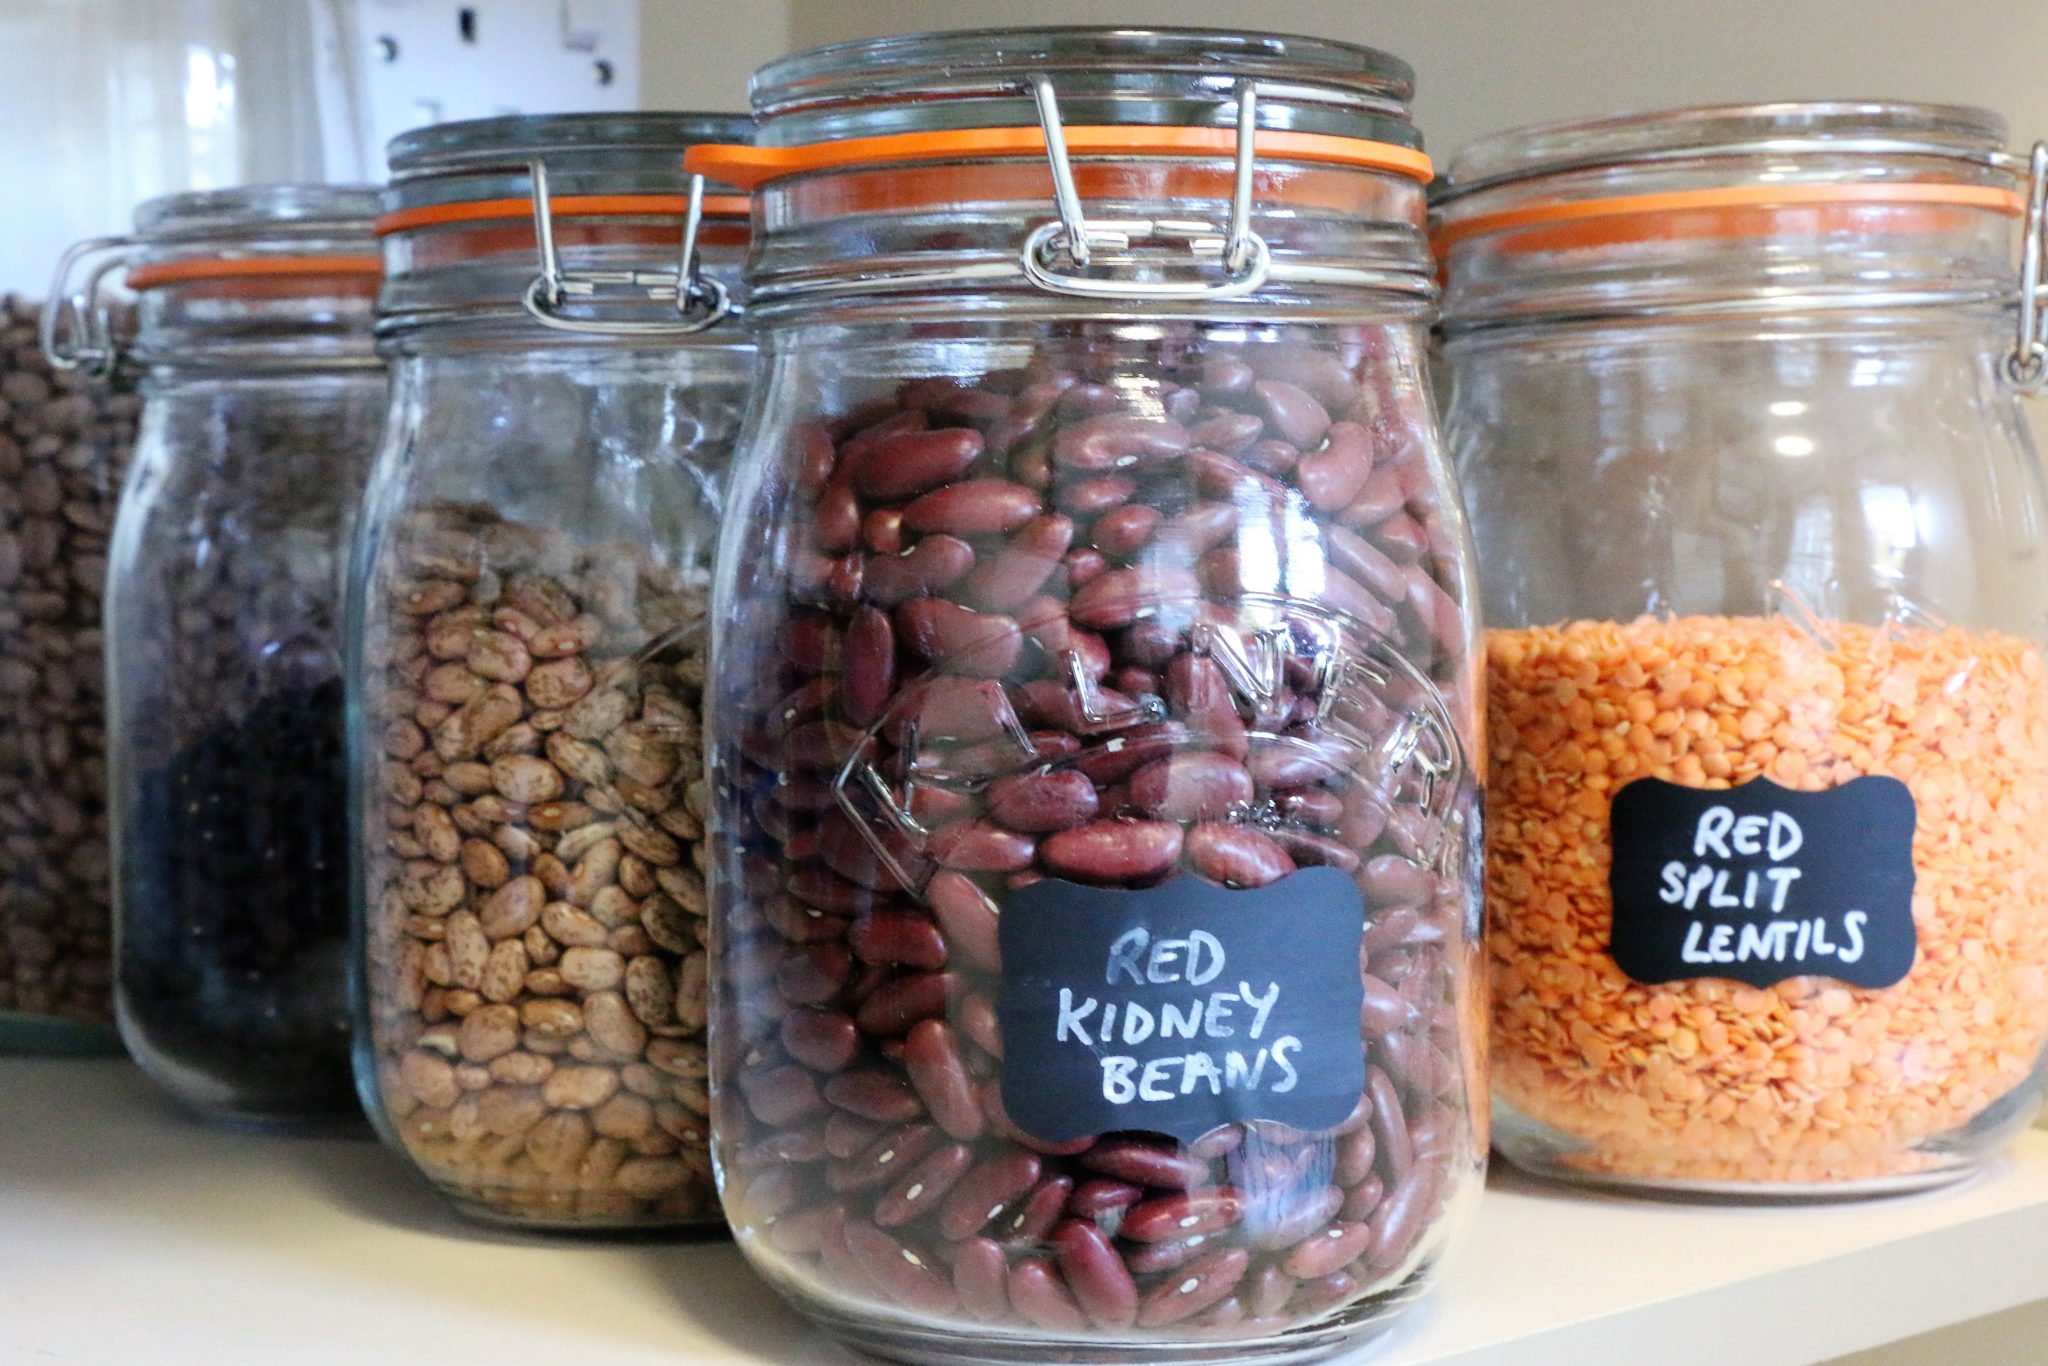 Kilner jars are great for storing dried goods such as beans.